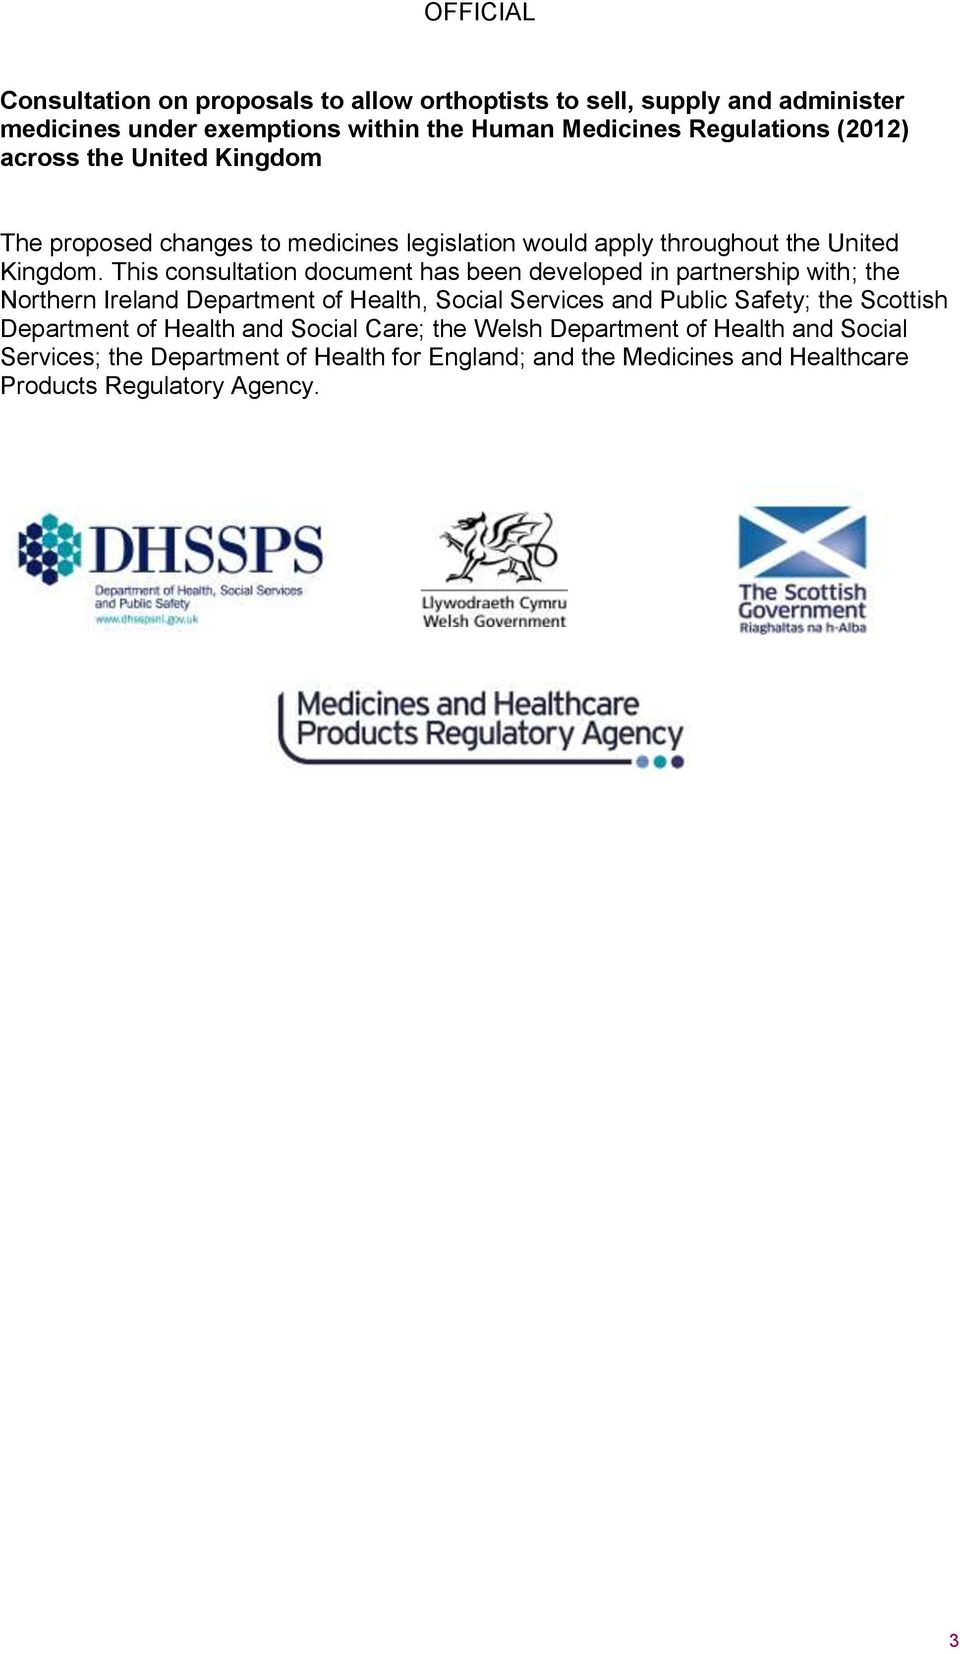 This consultation document has been developed in partnership with; the Northern Ireland Department of Health, Social Services and Public Safety; the